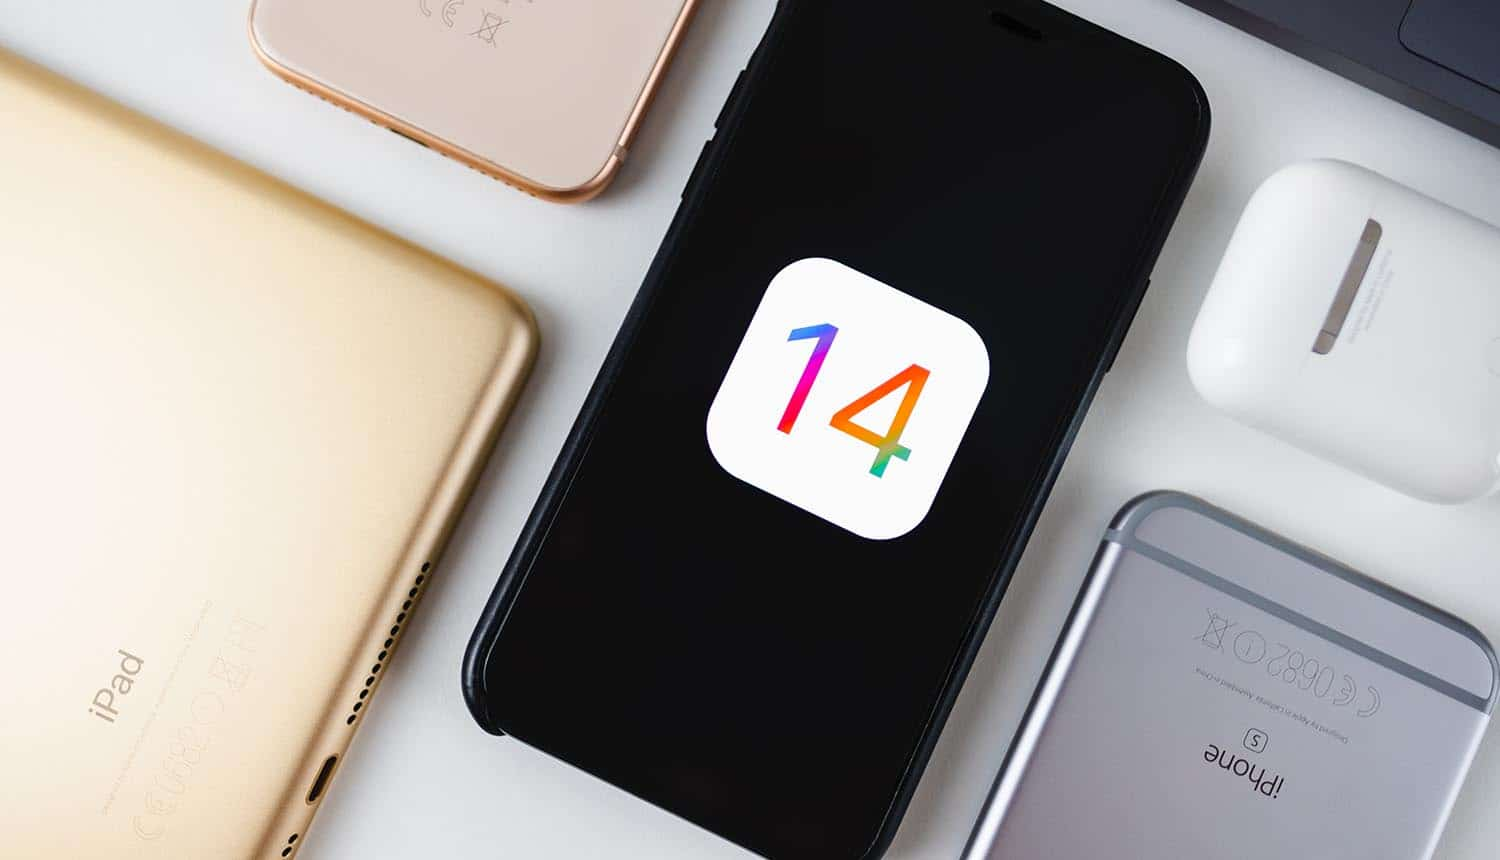 iPhone with iOS 14 logo on the screen showing new user consent requirements' impact on online ads